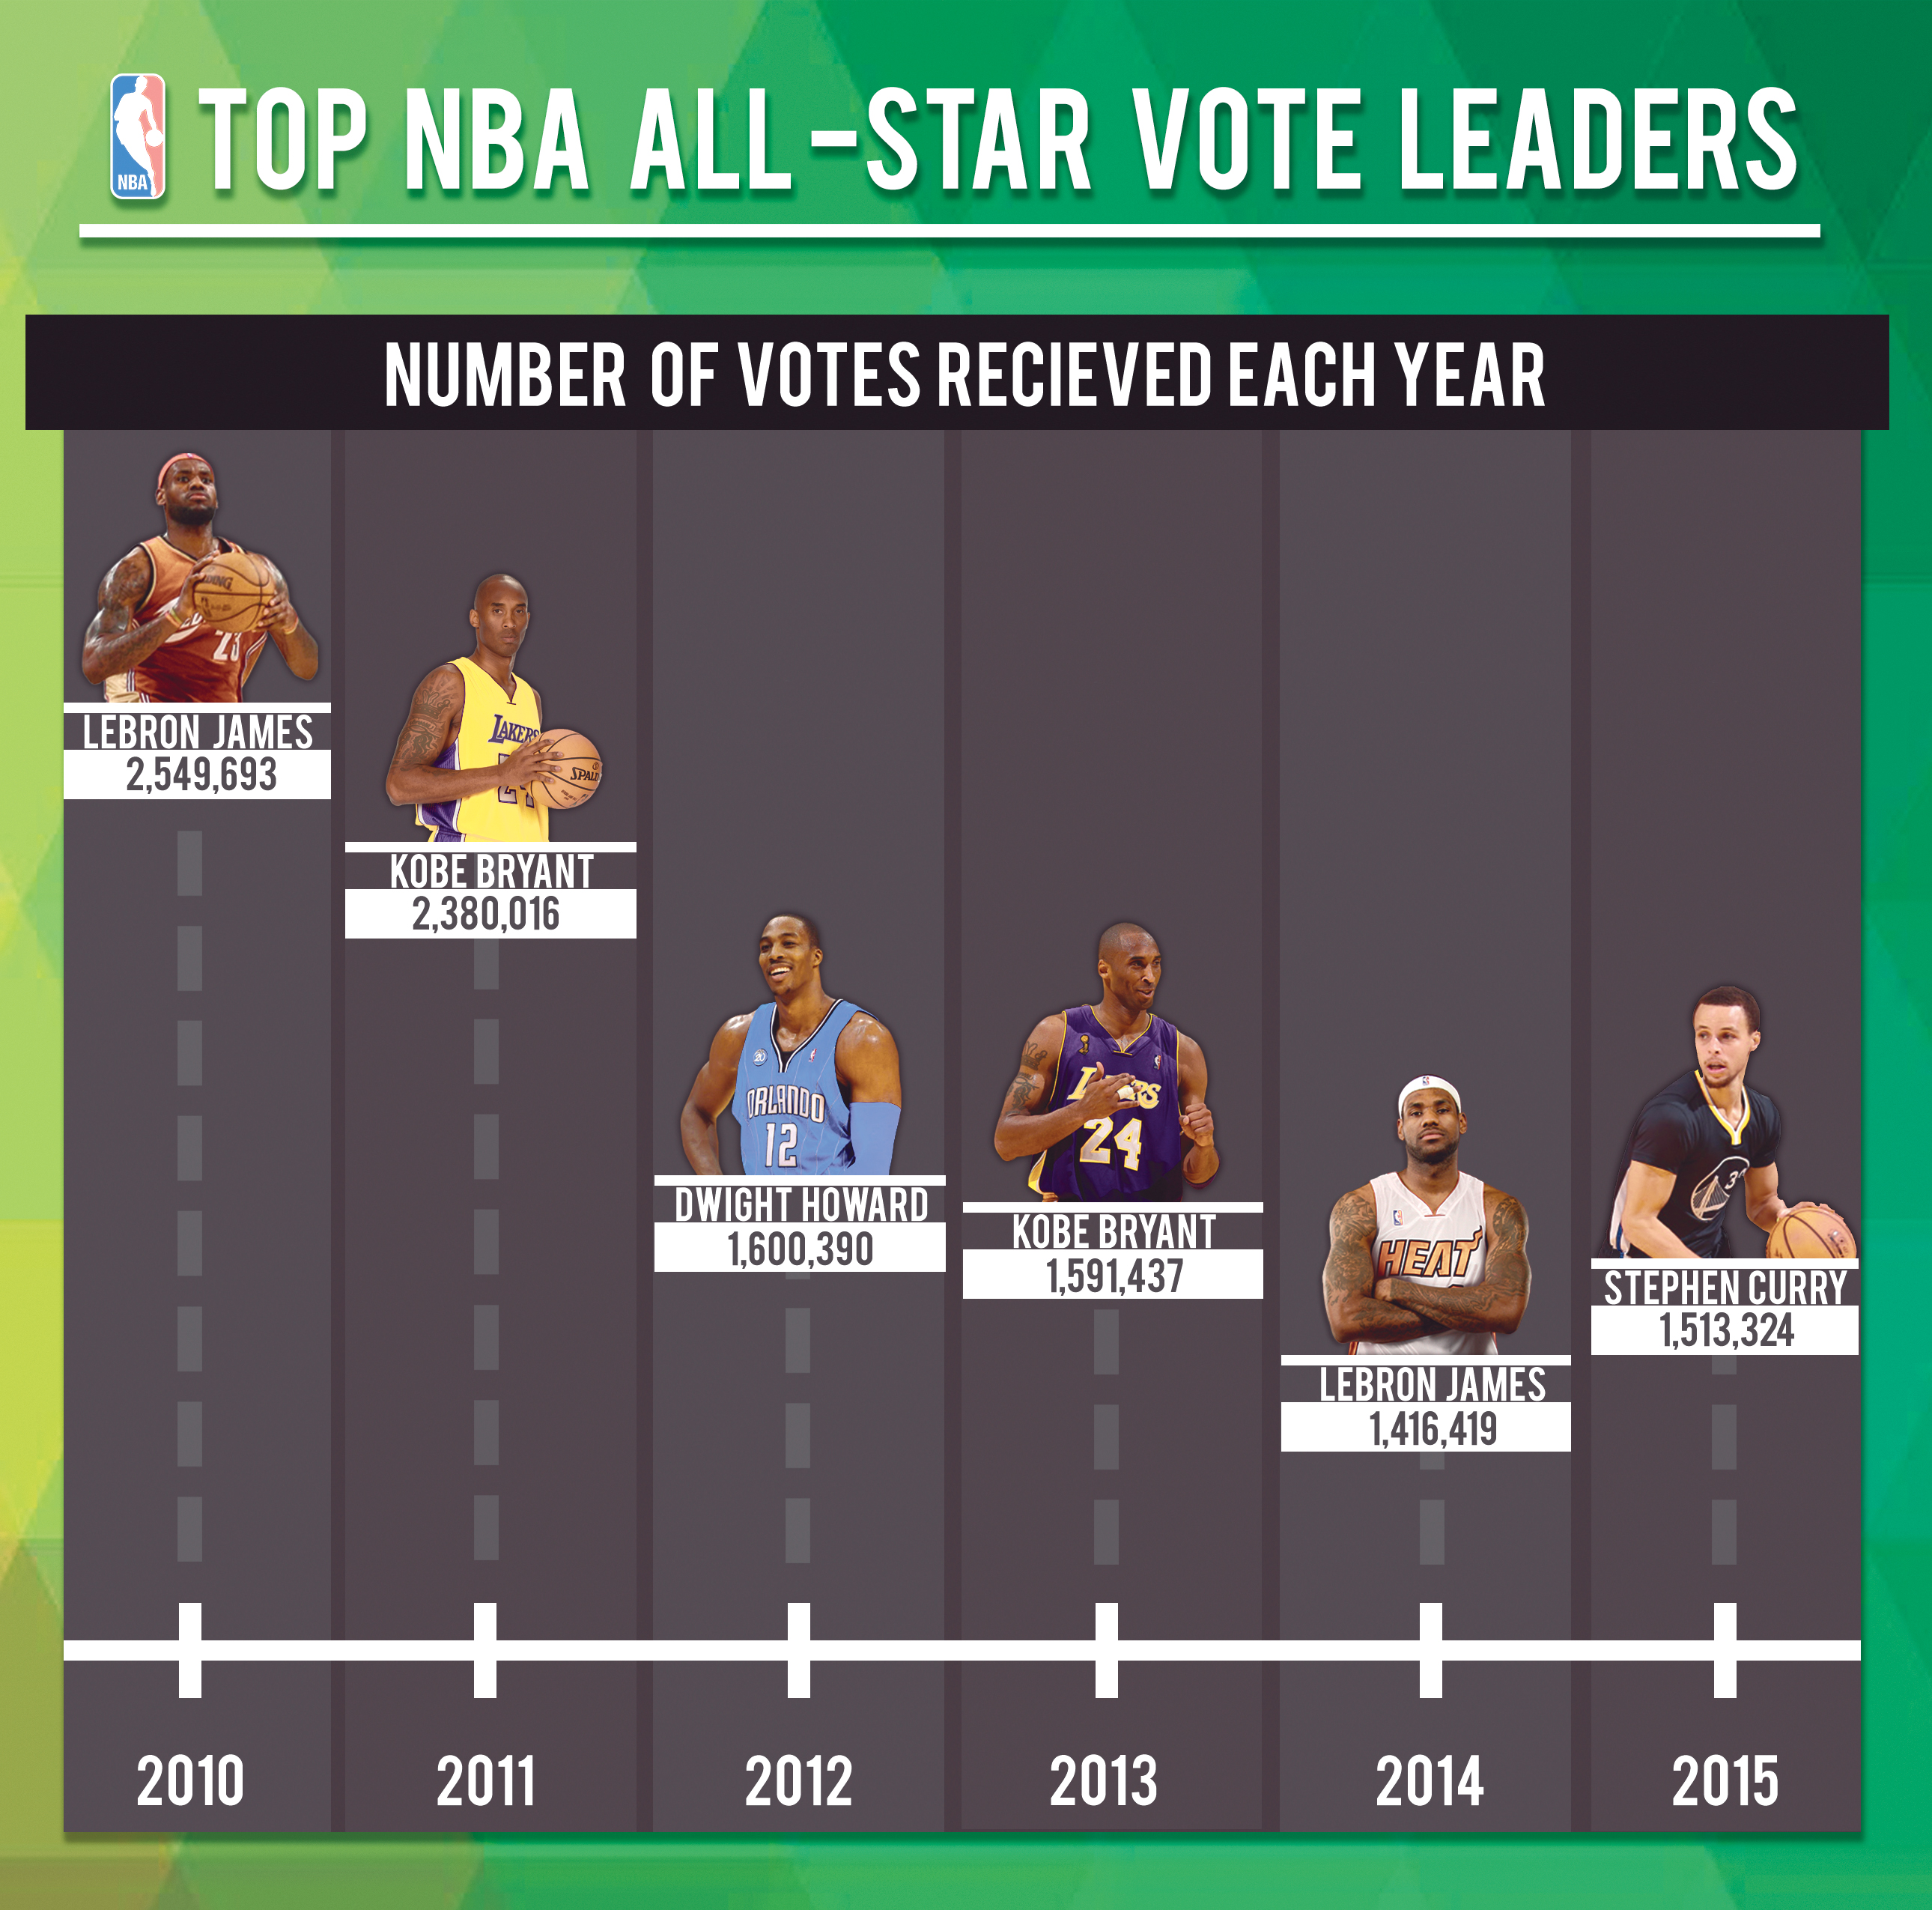 All-Star game turning into popularity contest